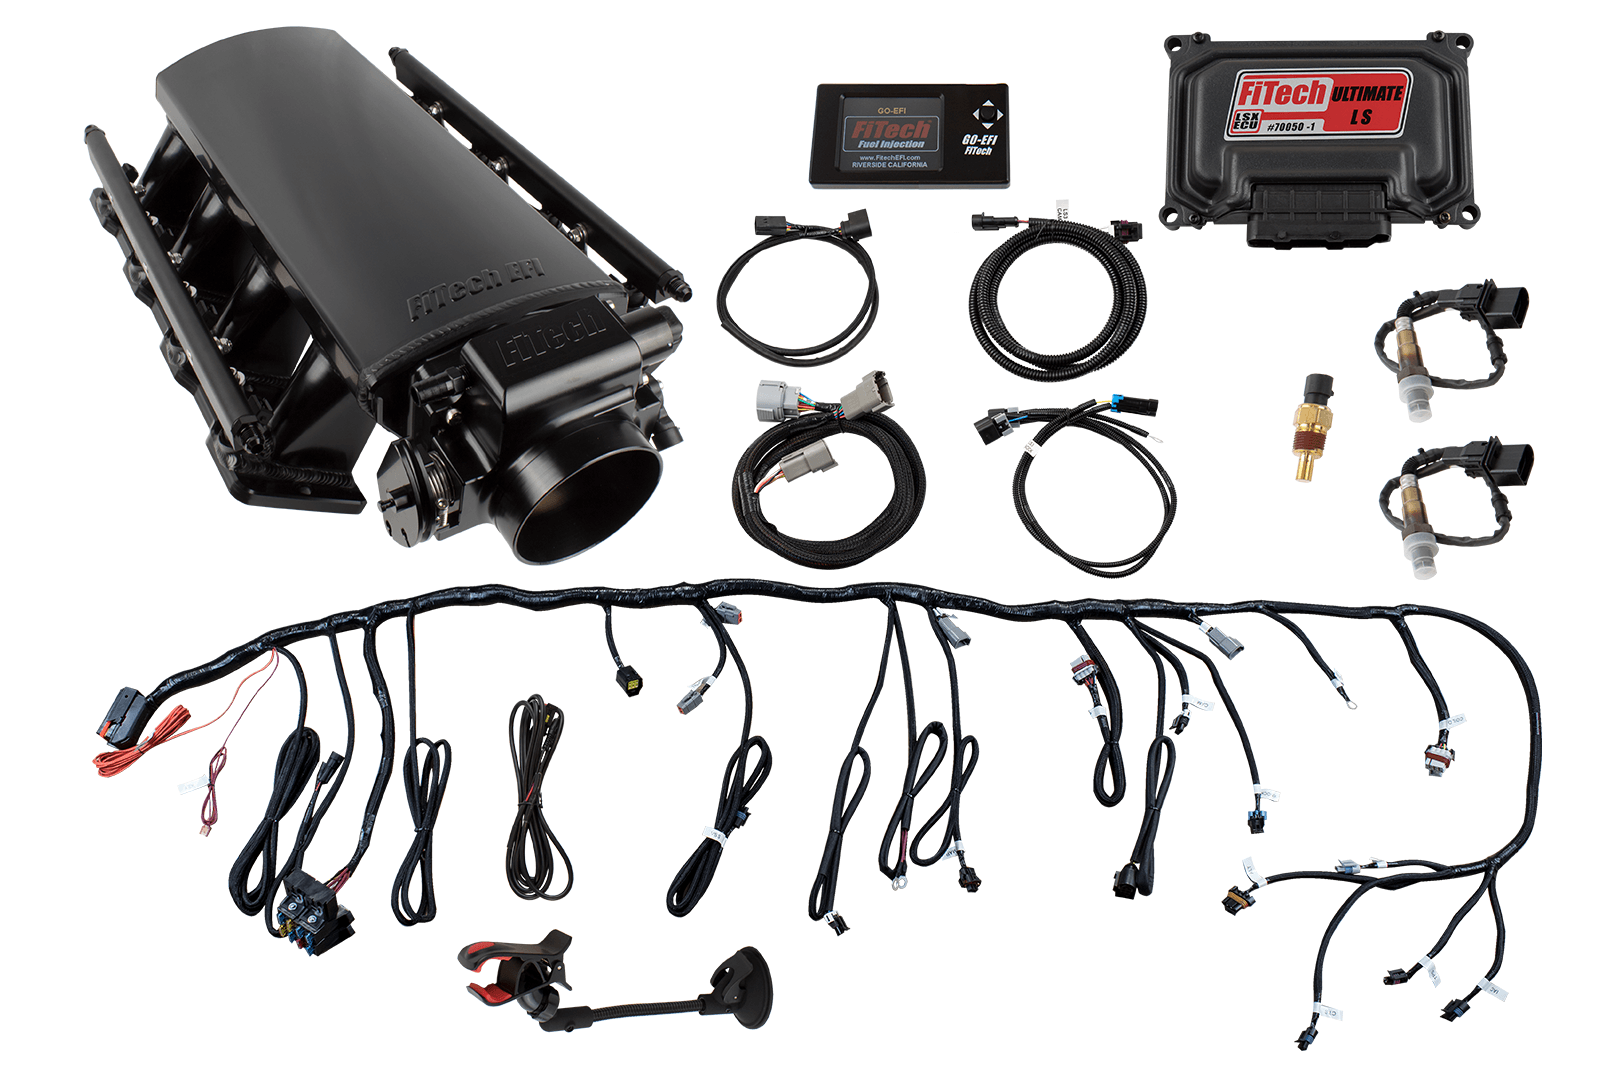 FiTech Ultimate LS1/LS2/LS6 EFI 500 HP Fuel Injection